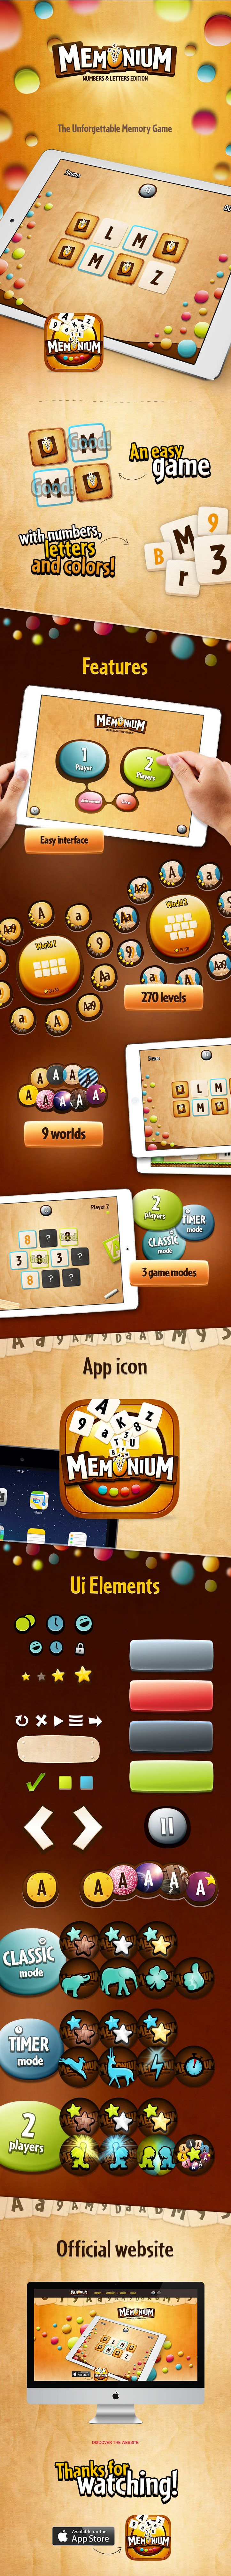 Memonium Game ipad